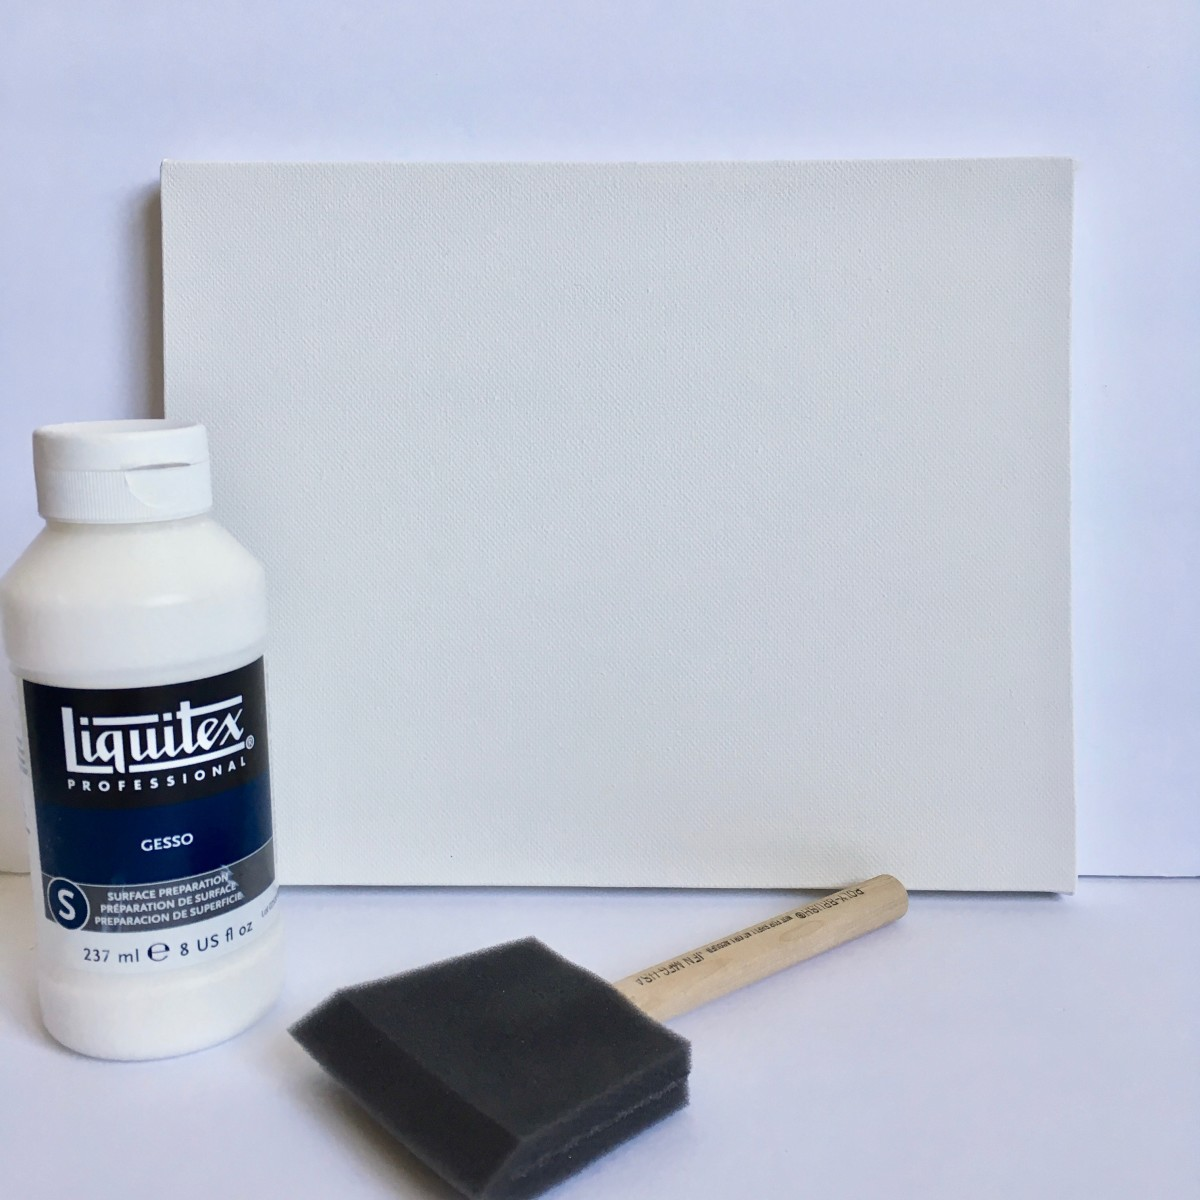 Stretched canvas and gesso